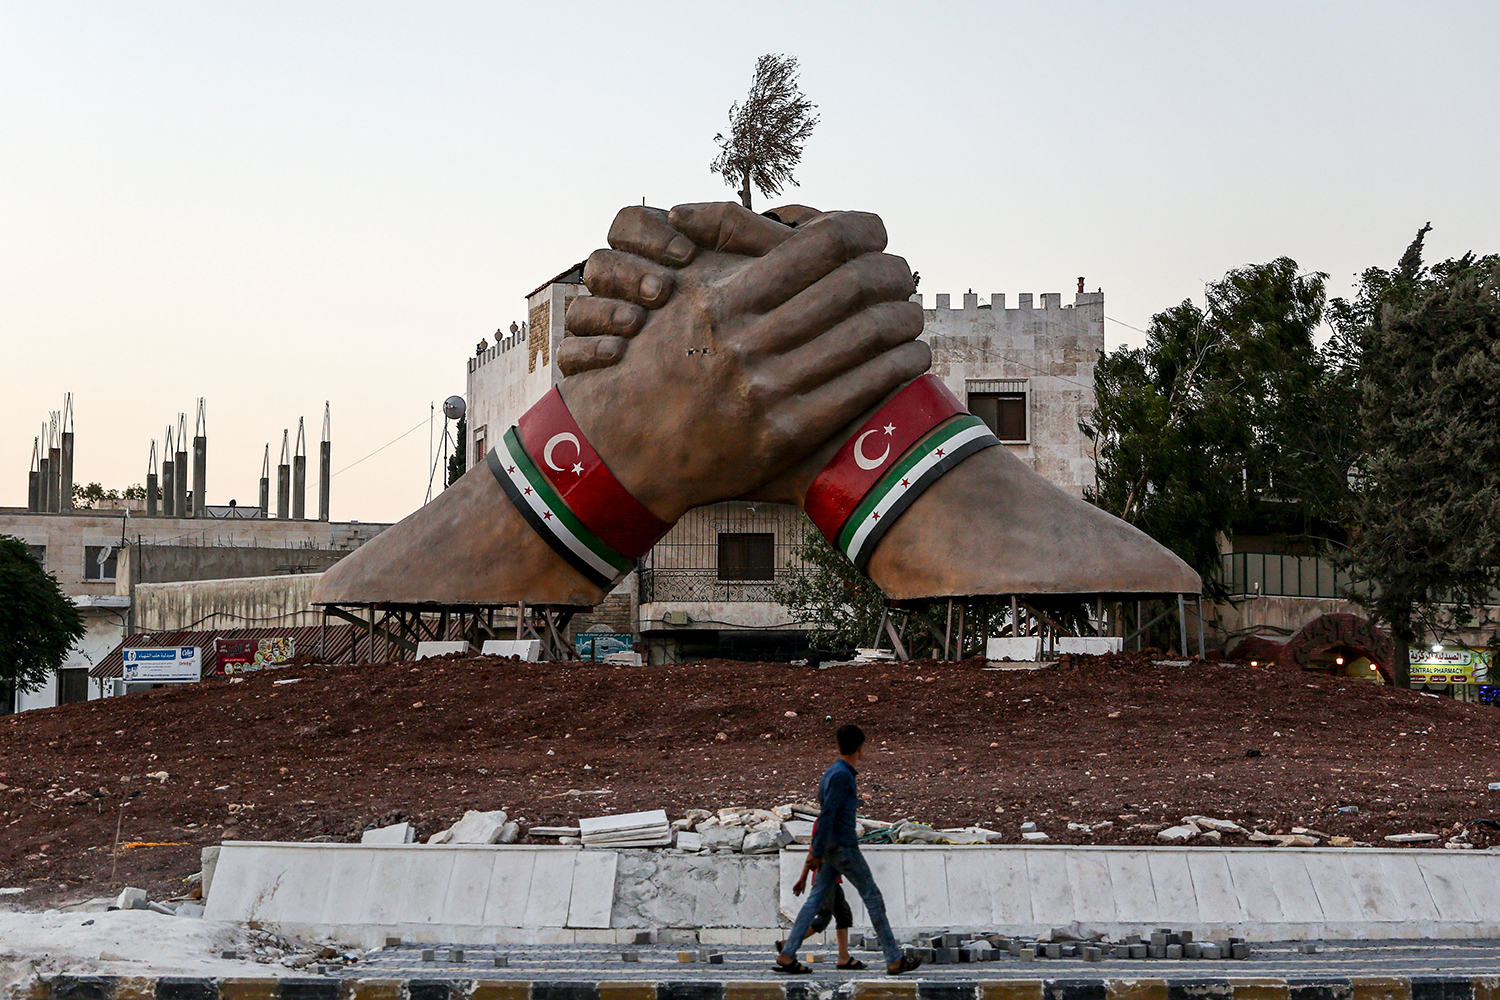 A giant sculpture features crossed hands with bracelets showing the Turkish and Syrian Rebel flags stands in a roundabout in the town of Azaz in the heart of a Turkish zone of influence in Syria's northern Aleppo province north of Aleppo near the Turkish border on July 27. NAZEER AL-KHATIB/AFP/Getty Images